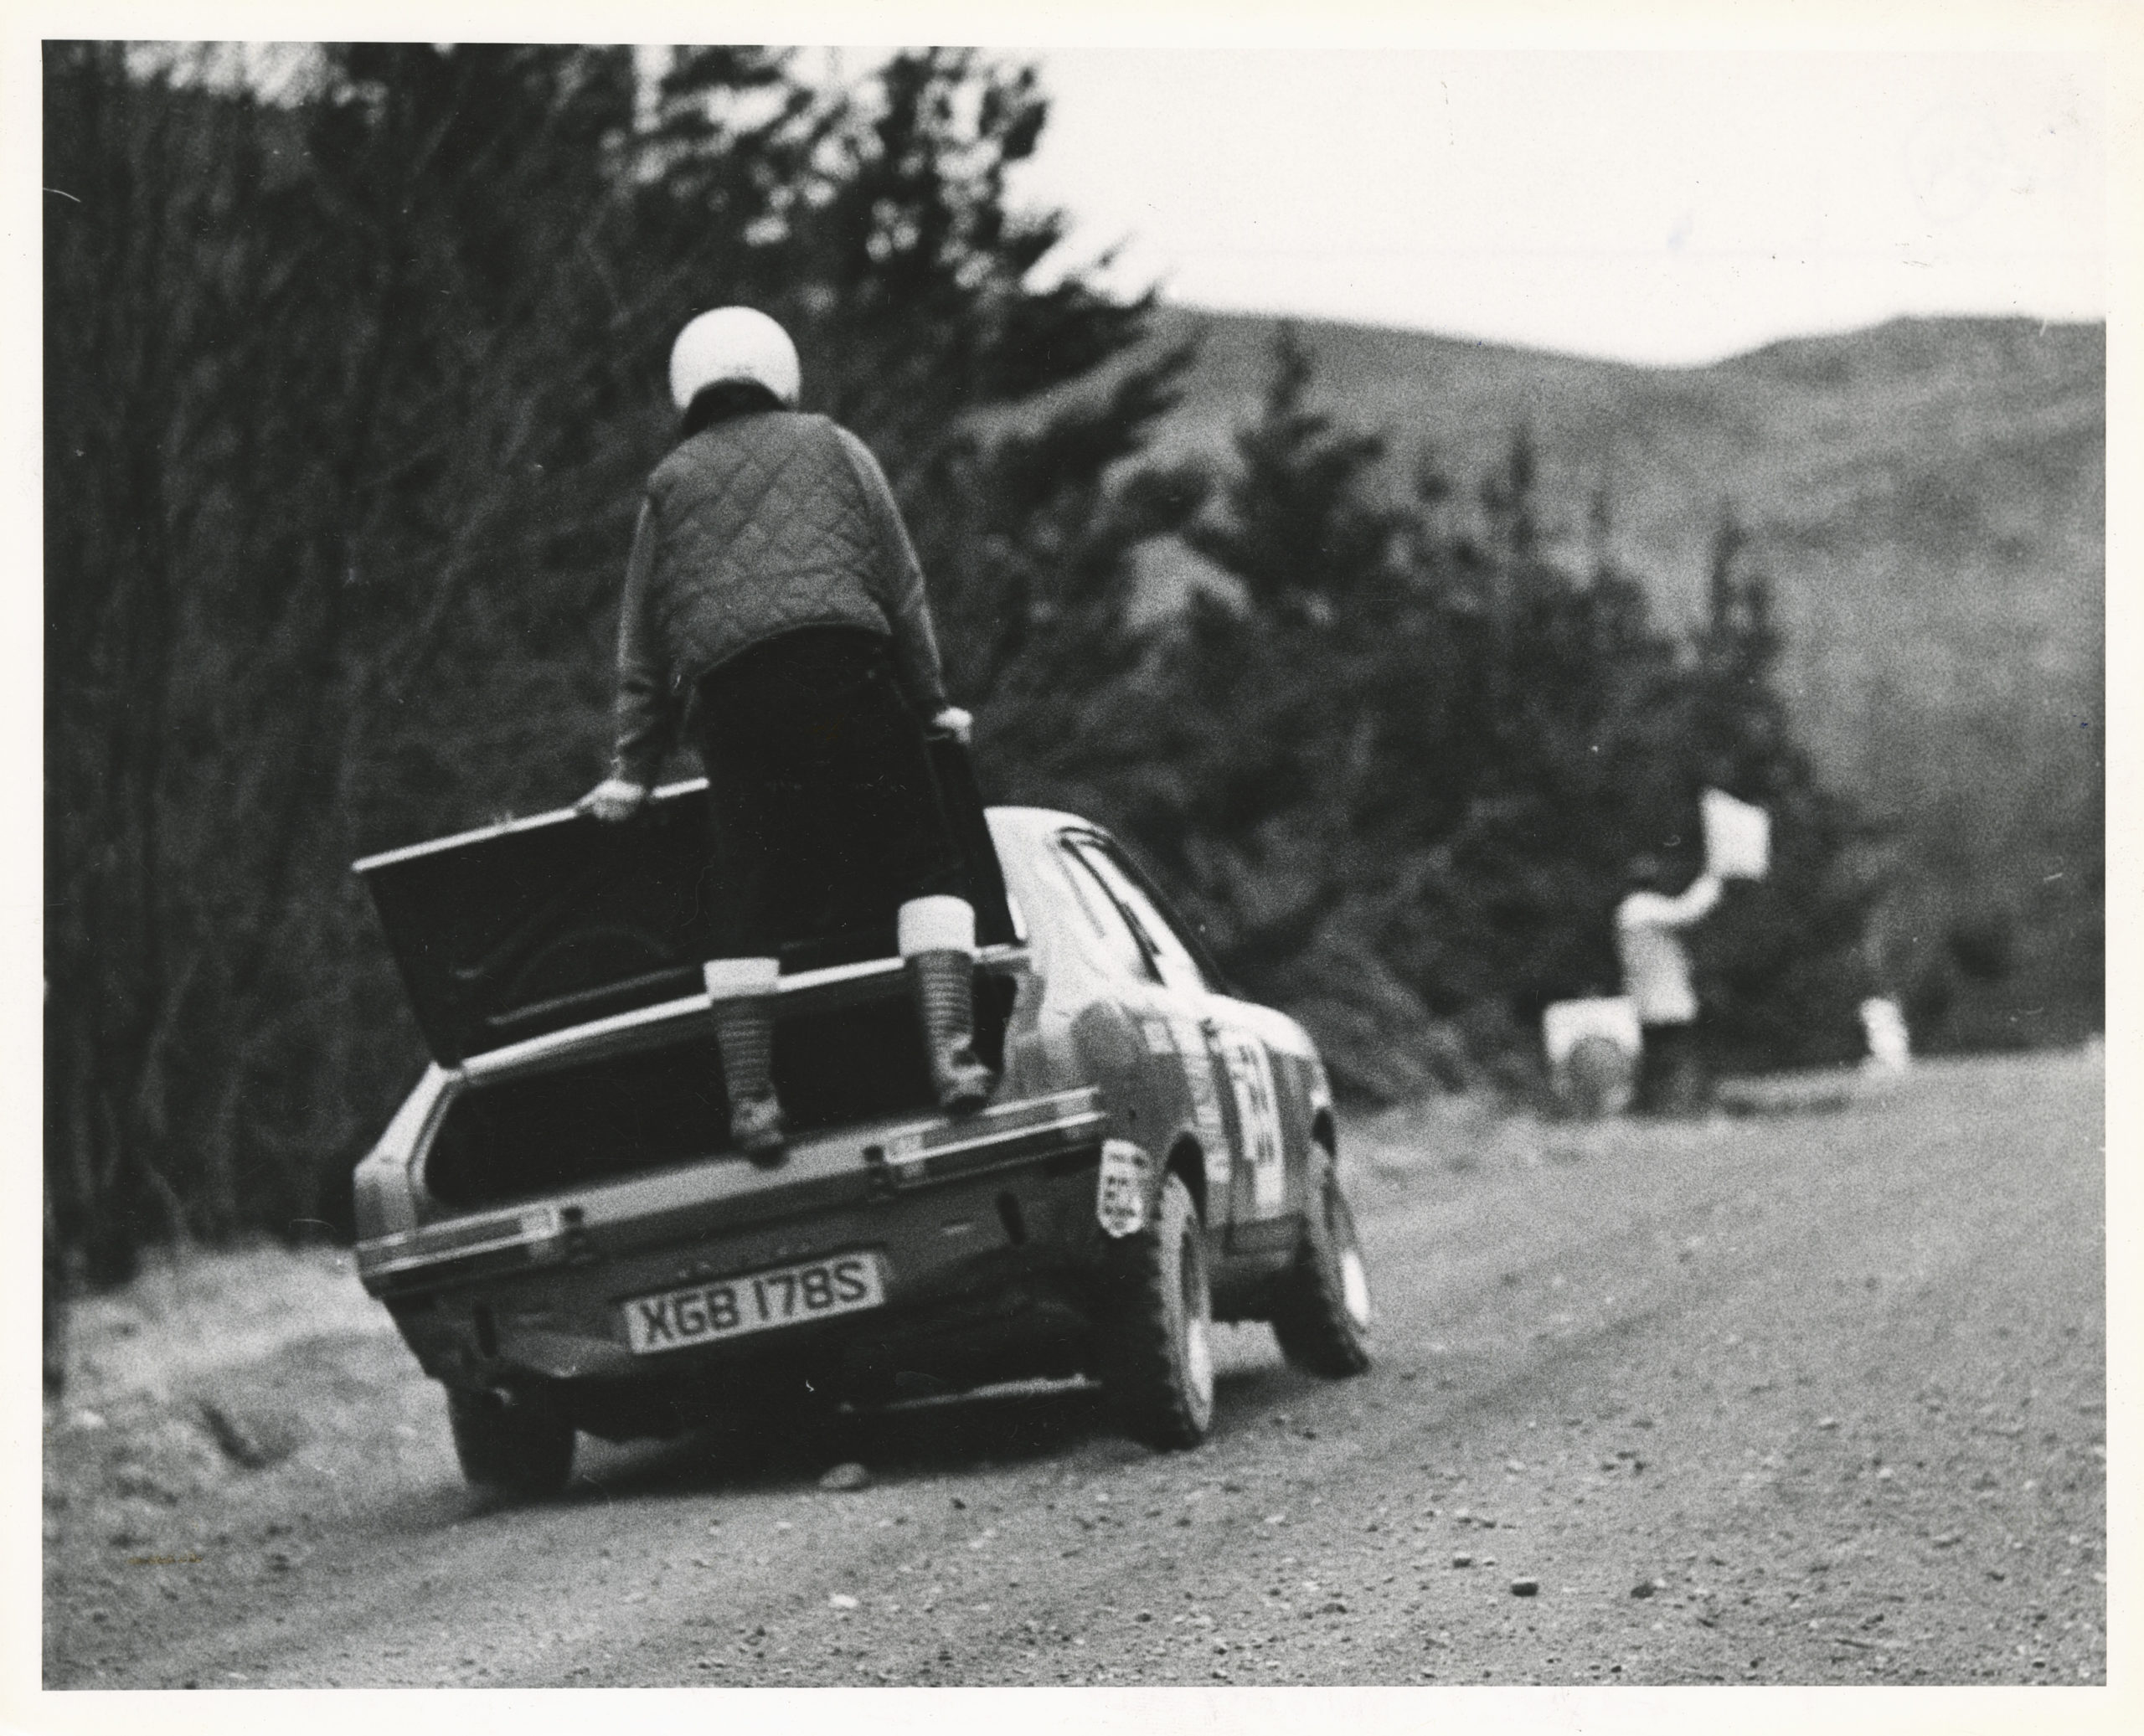 Skene driver Keith Morrison lost a front wheel from his Talbot Avenger and navigator Andrew Hosie rode shotgun at the back of the car in a bid to keep the front clear of the ground